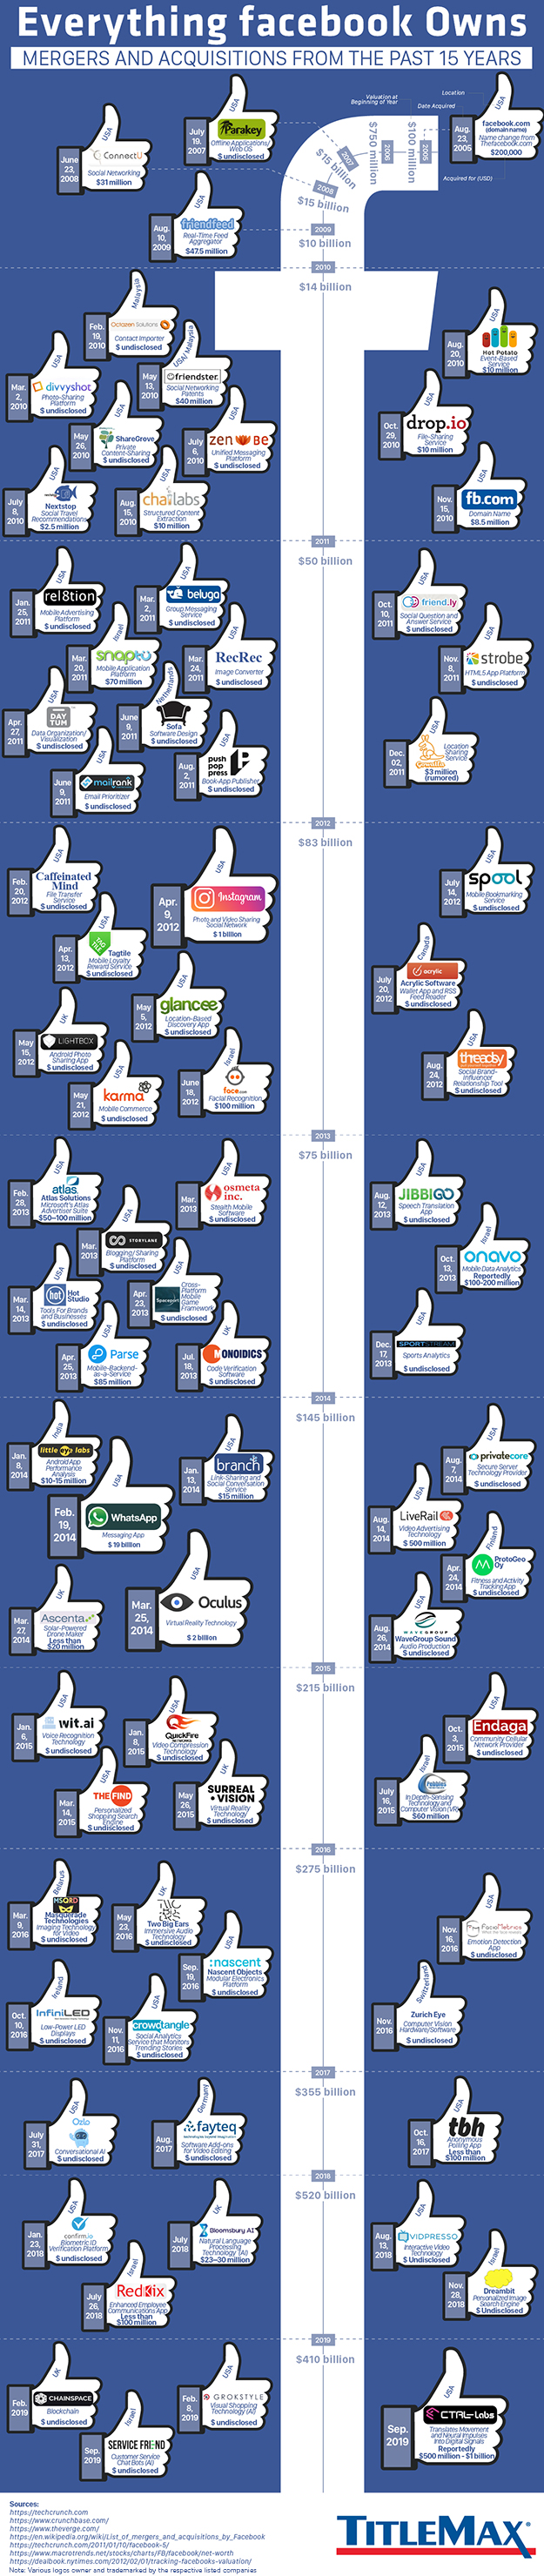 Infographic for Everything Facebook Owns: Mergers and Acquisitions from the Past 15 Years